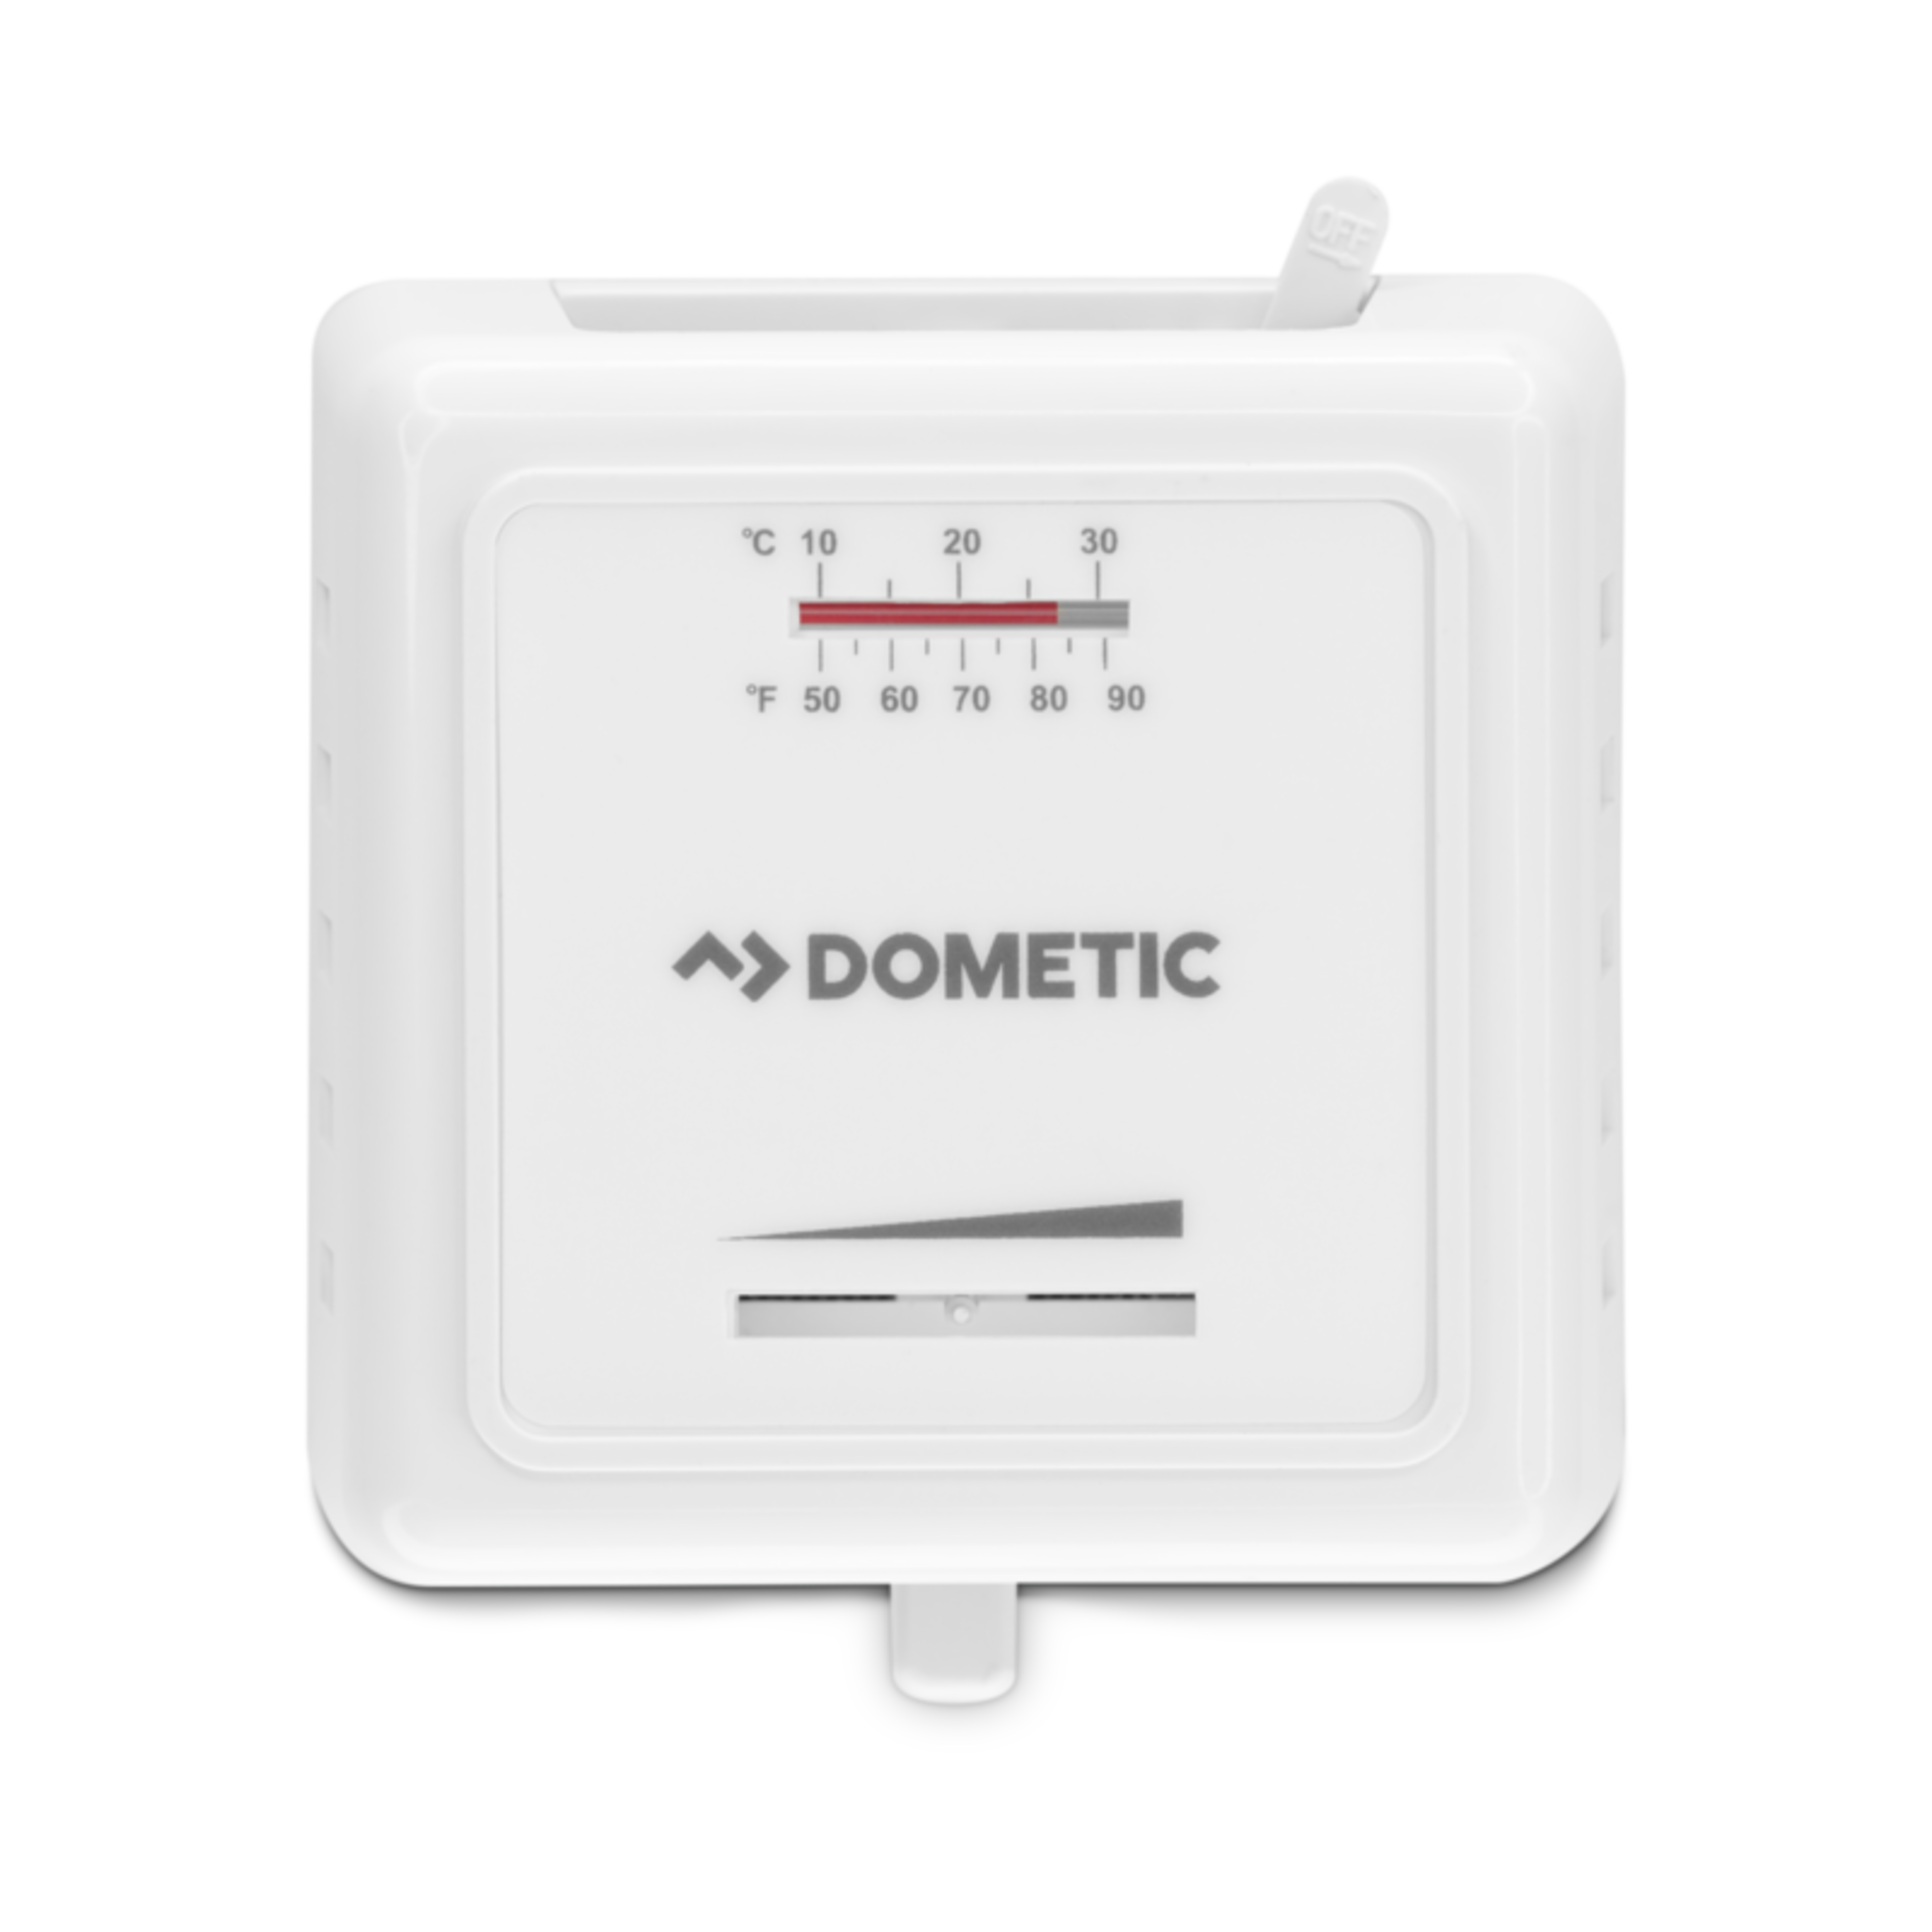 Dometic Furnace Thermostat - Mechanical Thermostat In Black